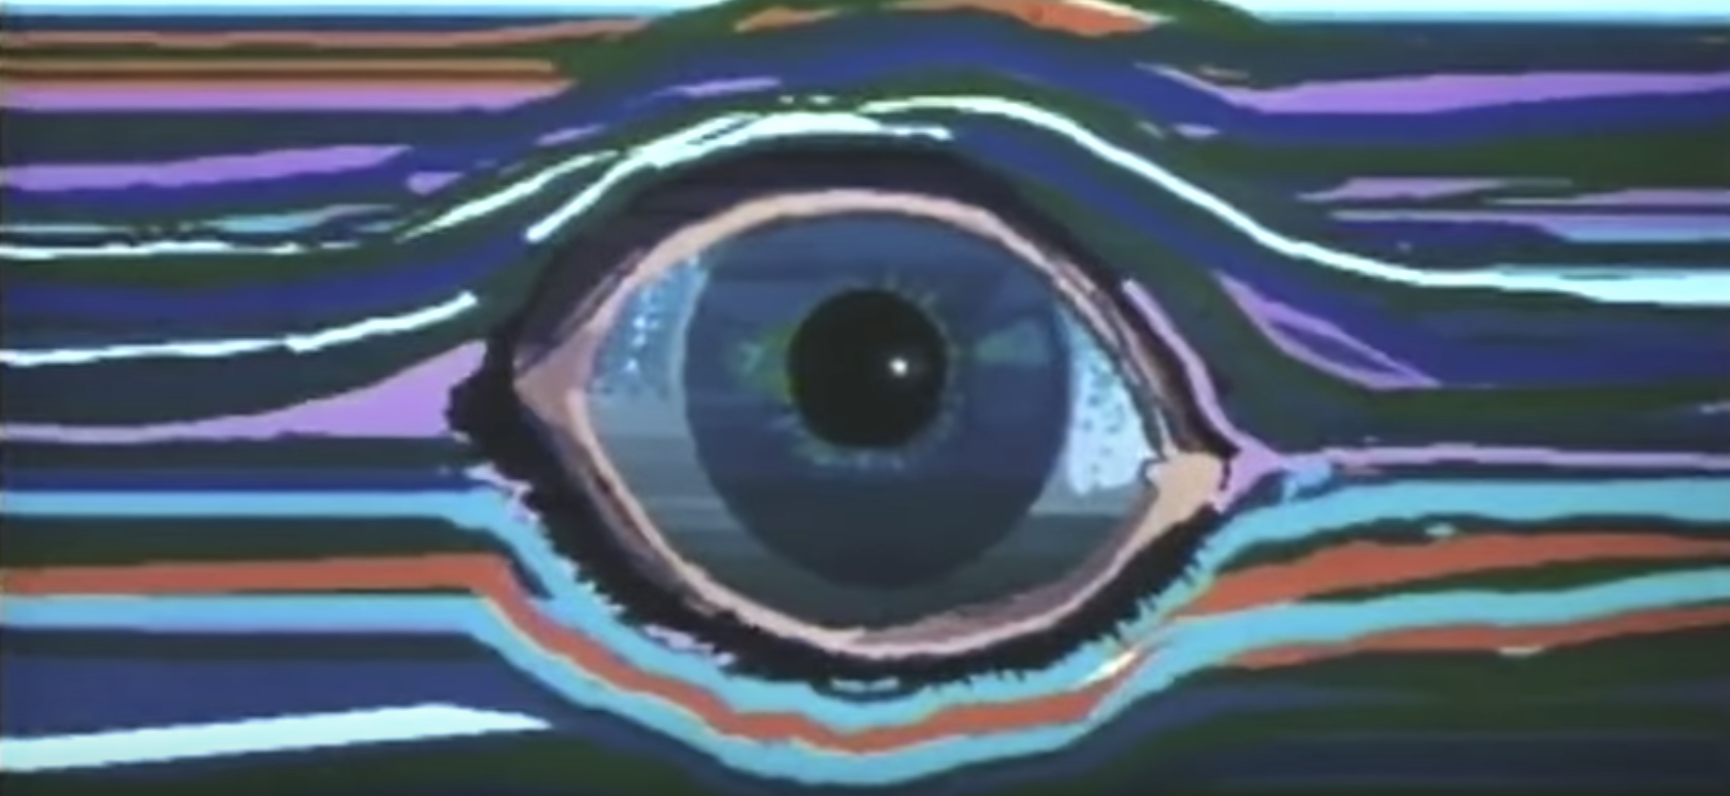 Image courtesy  Videodrome Original Theatrical Trailer  (Universal Pictures)